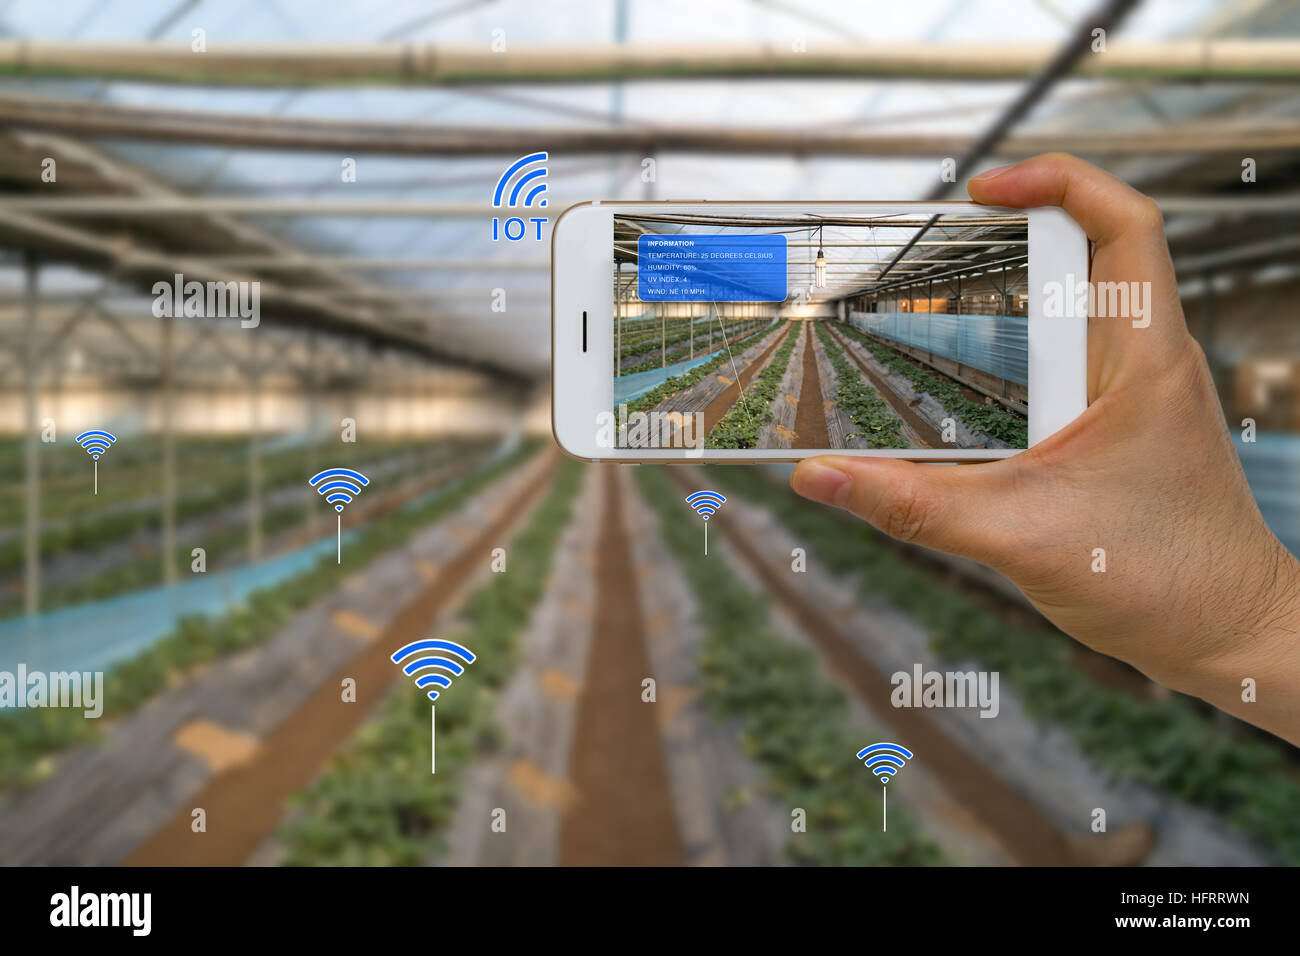 App on smart device showing smart farming agriculture concept using internet of things, IOT, and augmented reality, - Stock Image